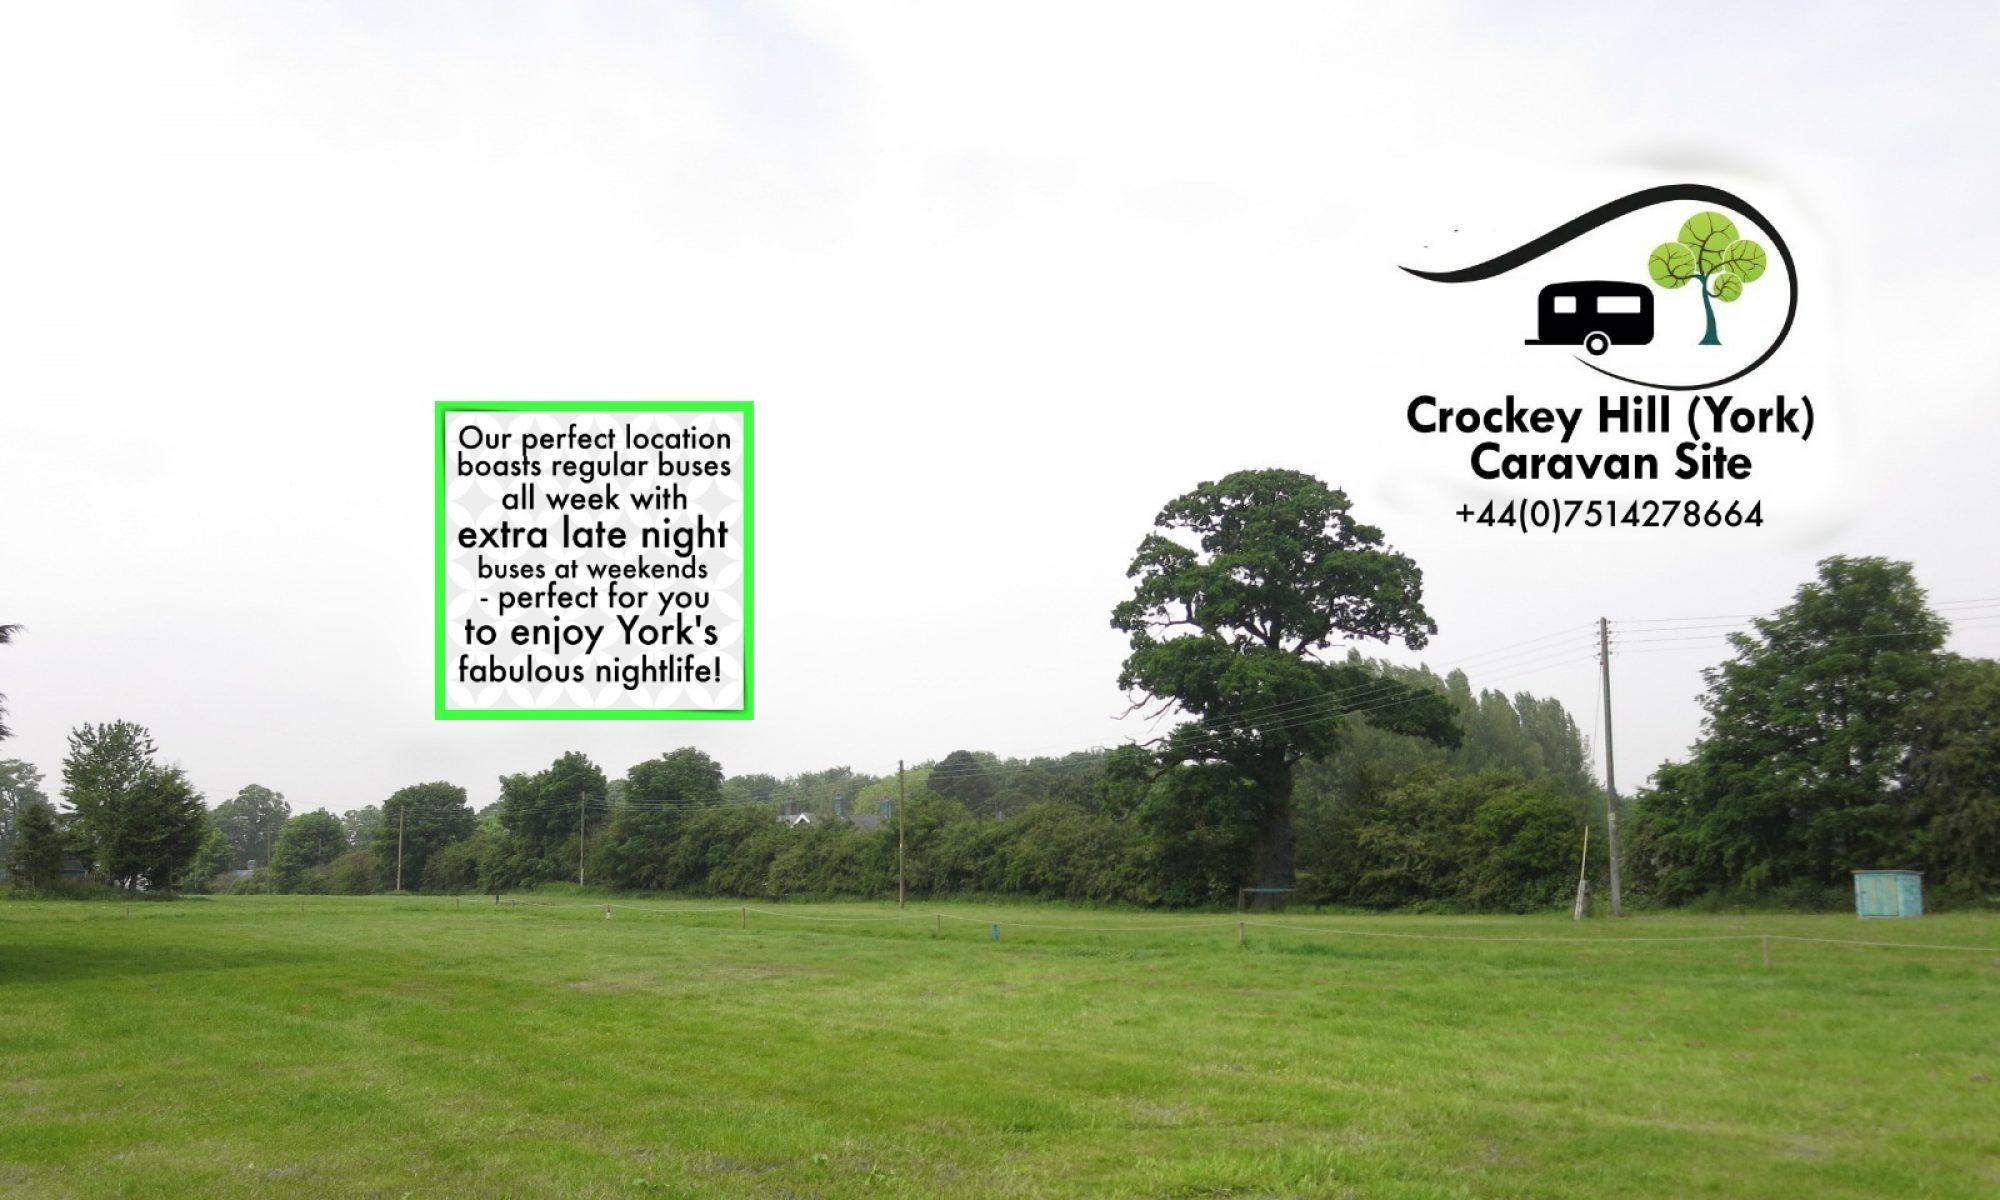 Crockey Hill Caravan Site York